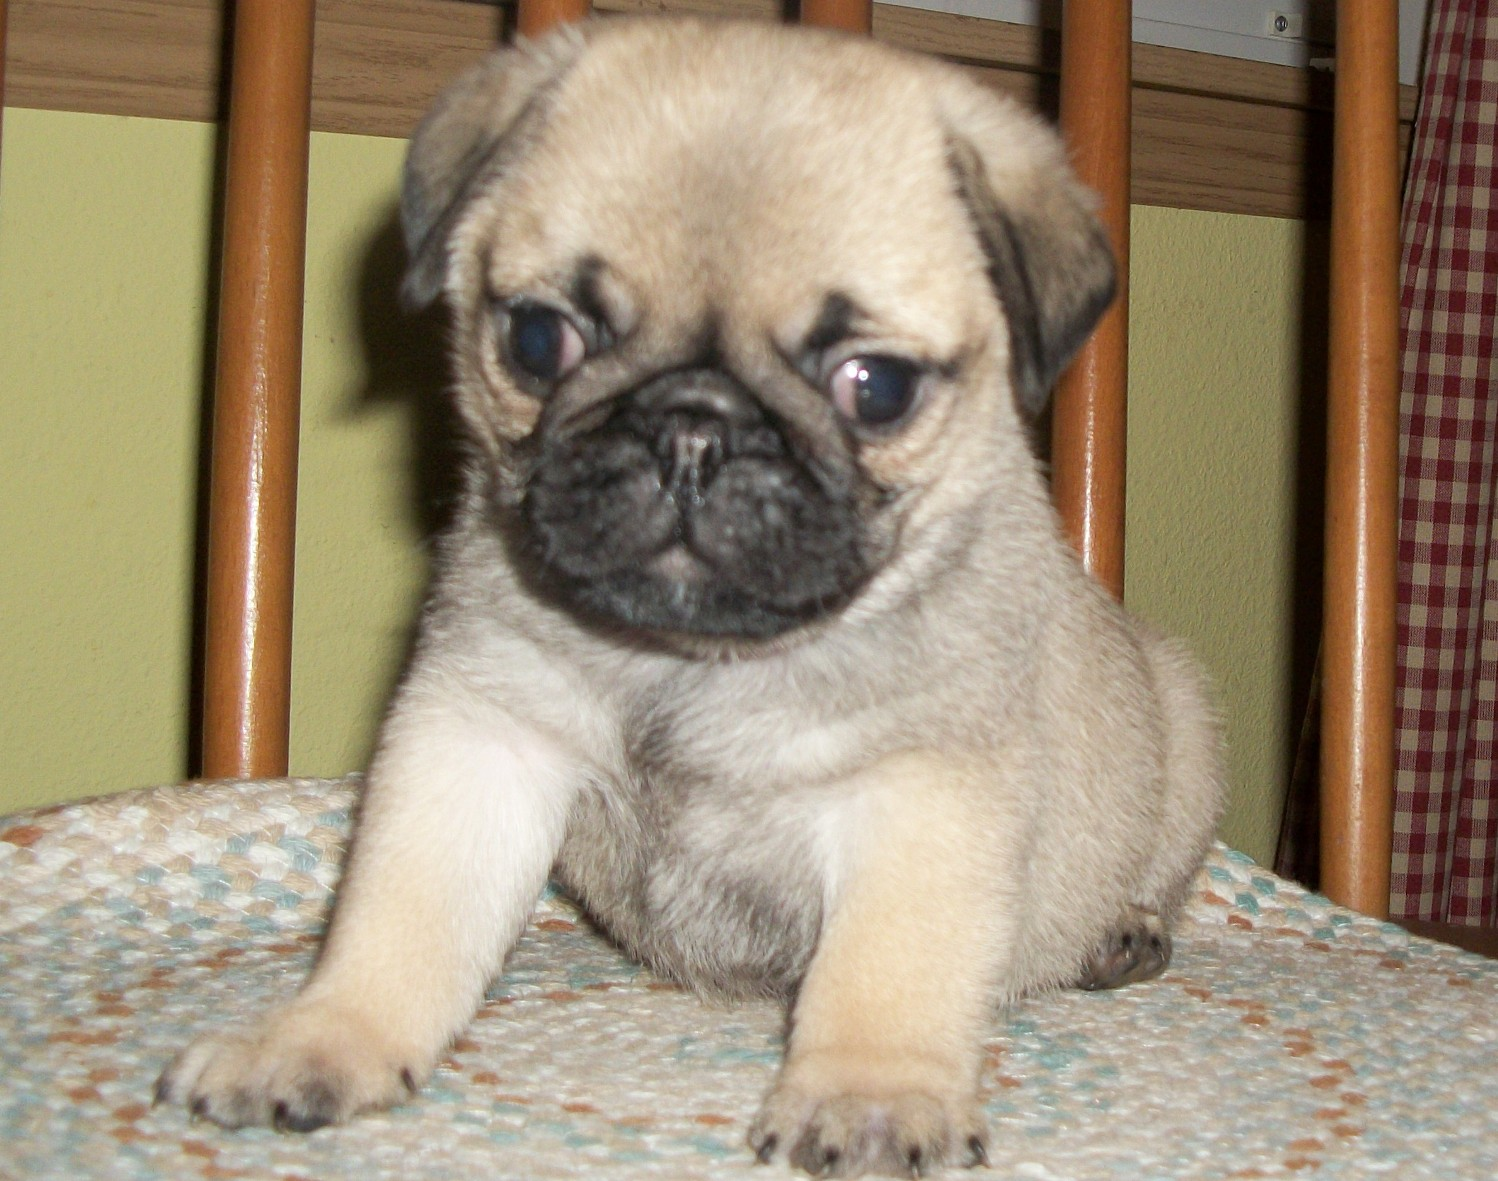 Baby Pugs For Sale 33 Background Wallpaper   DogBreedsWallpaperscom 1498x1181